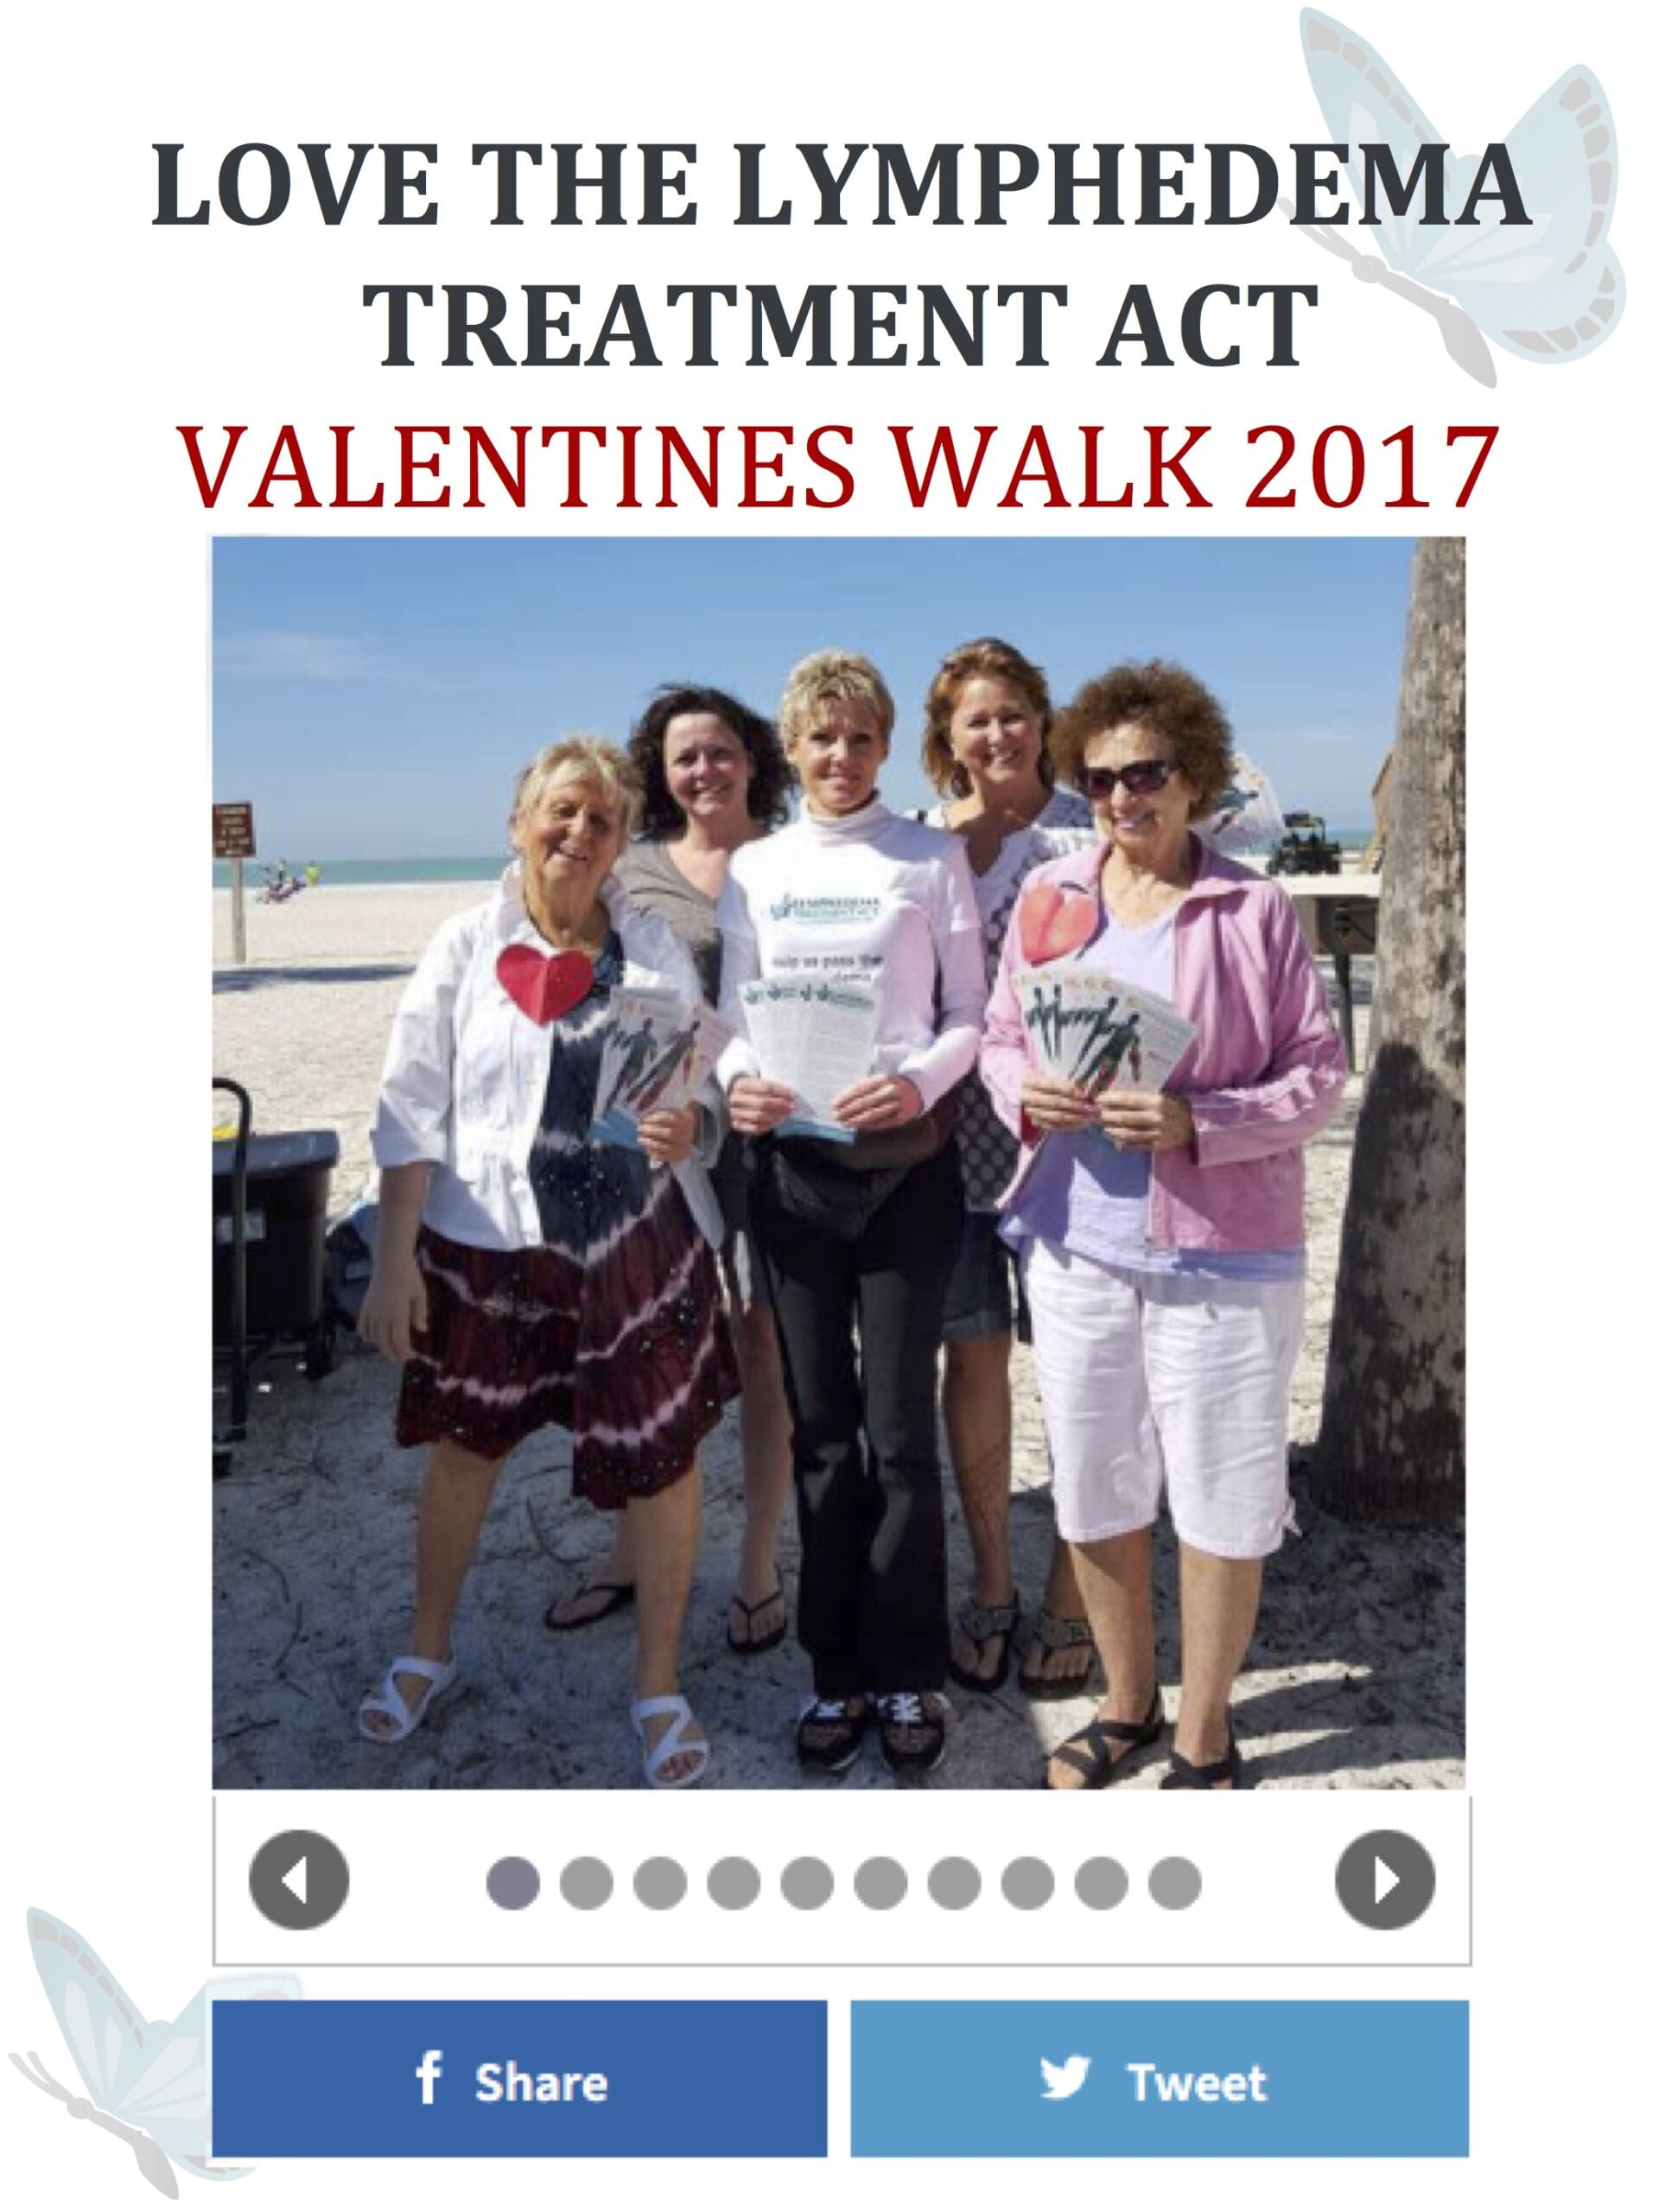 love-the-lymphedema-treatment-act-valentines-walk-2017